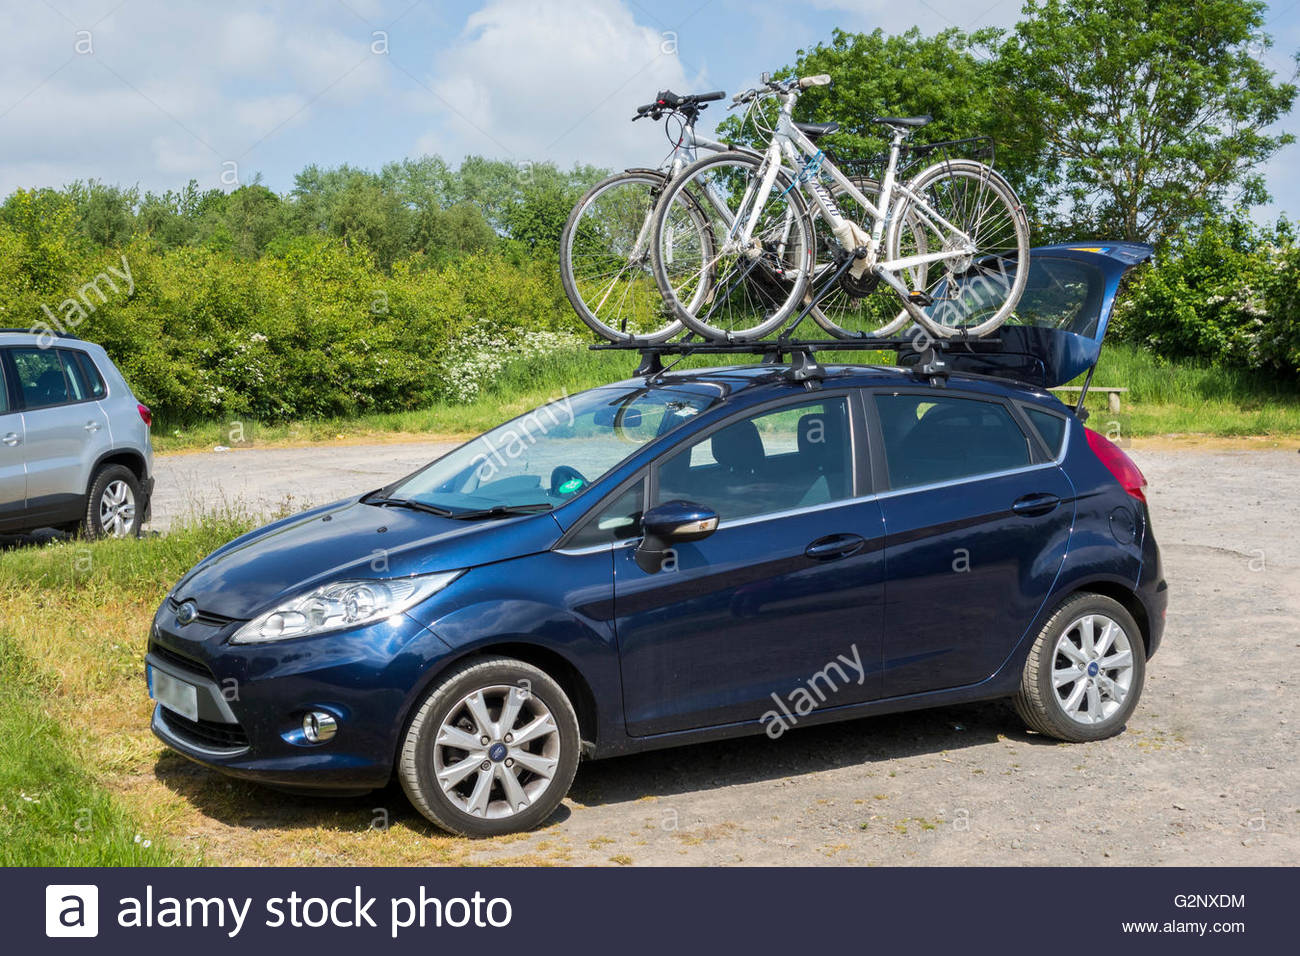 A Ford Fiesta car carrying two bikes on a roof rack Stock